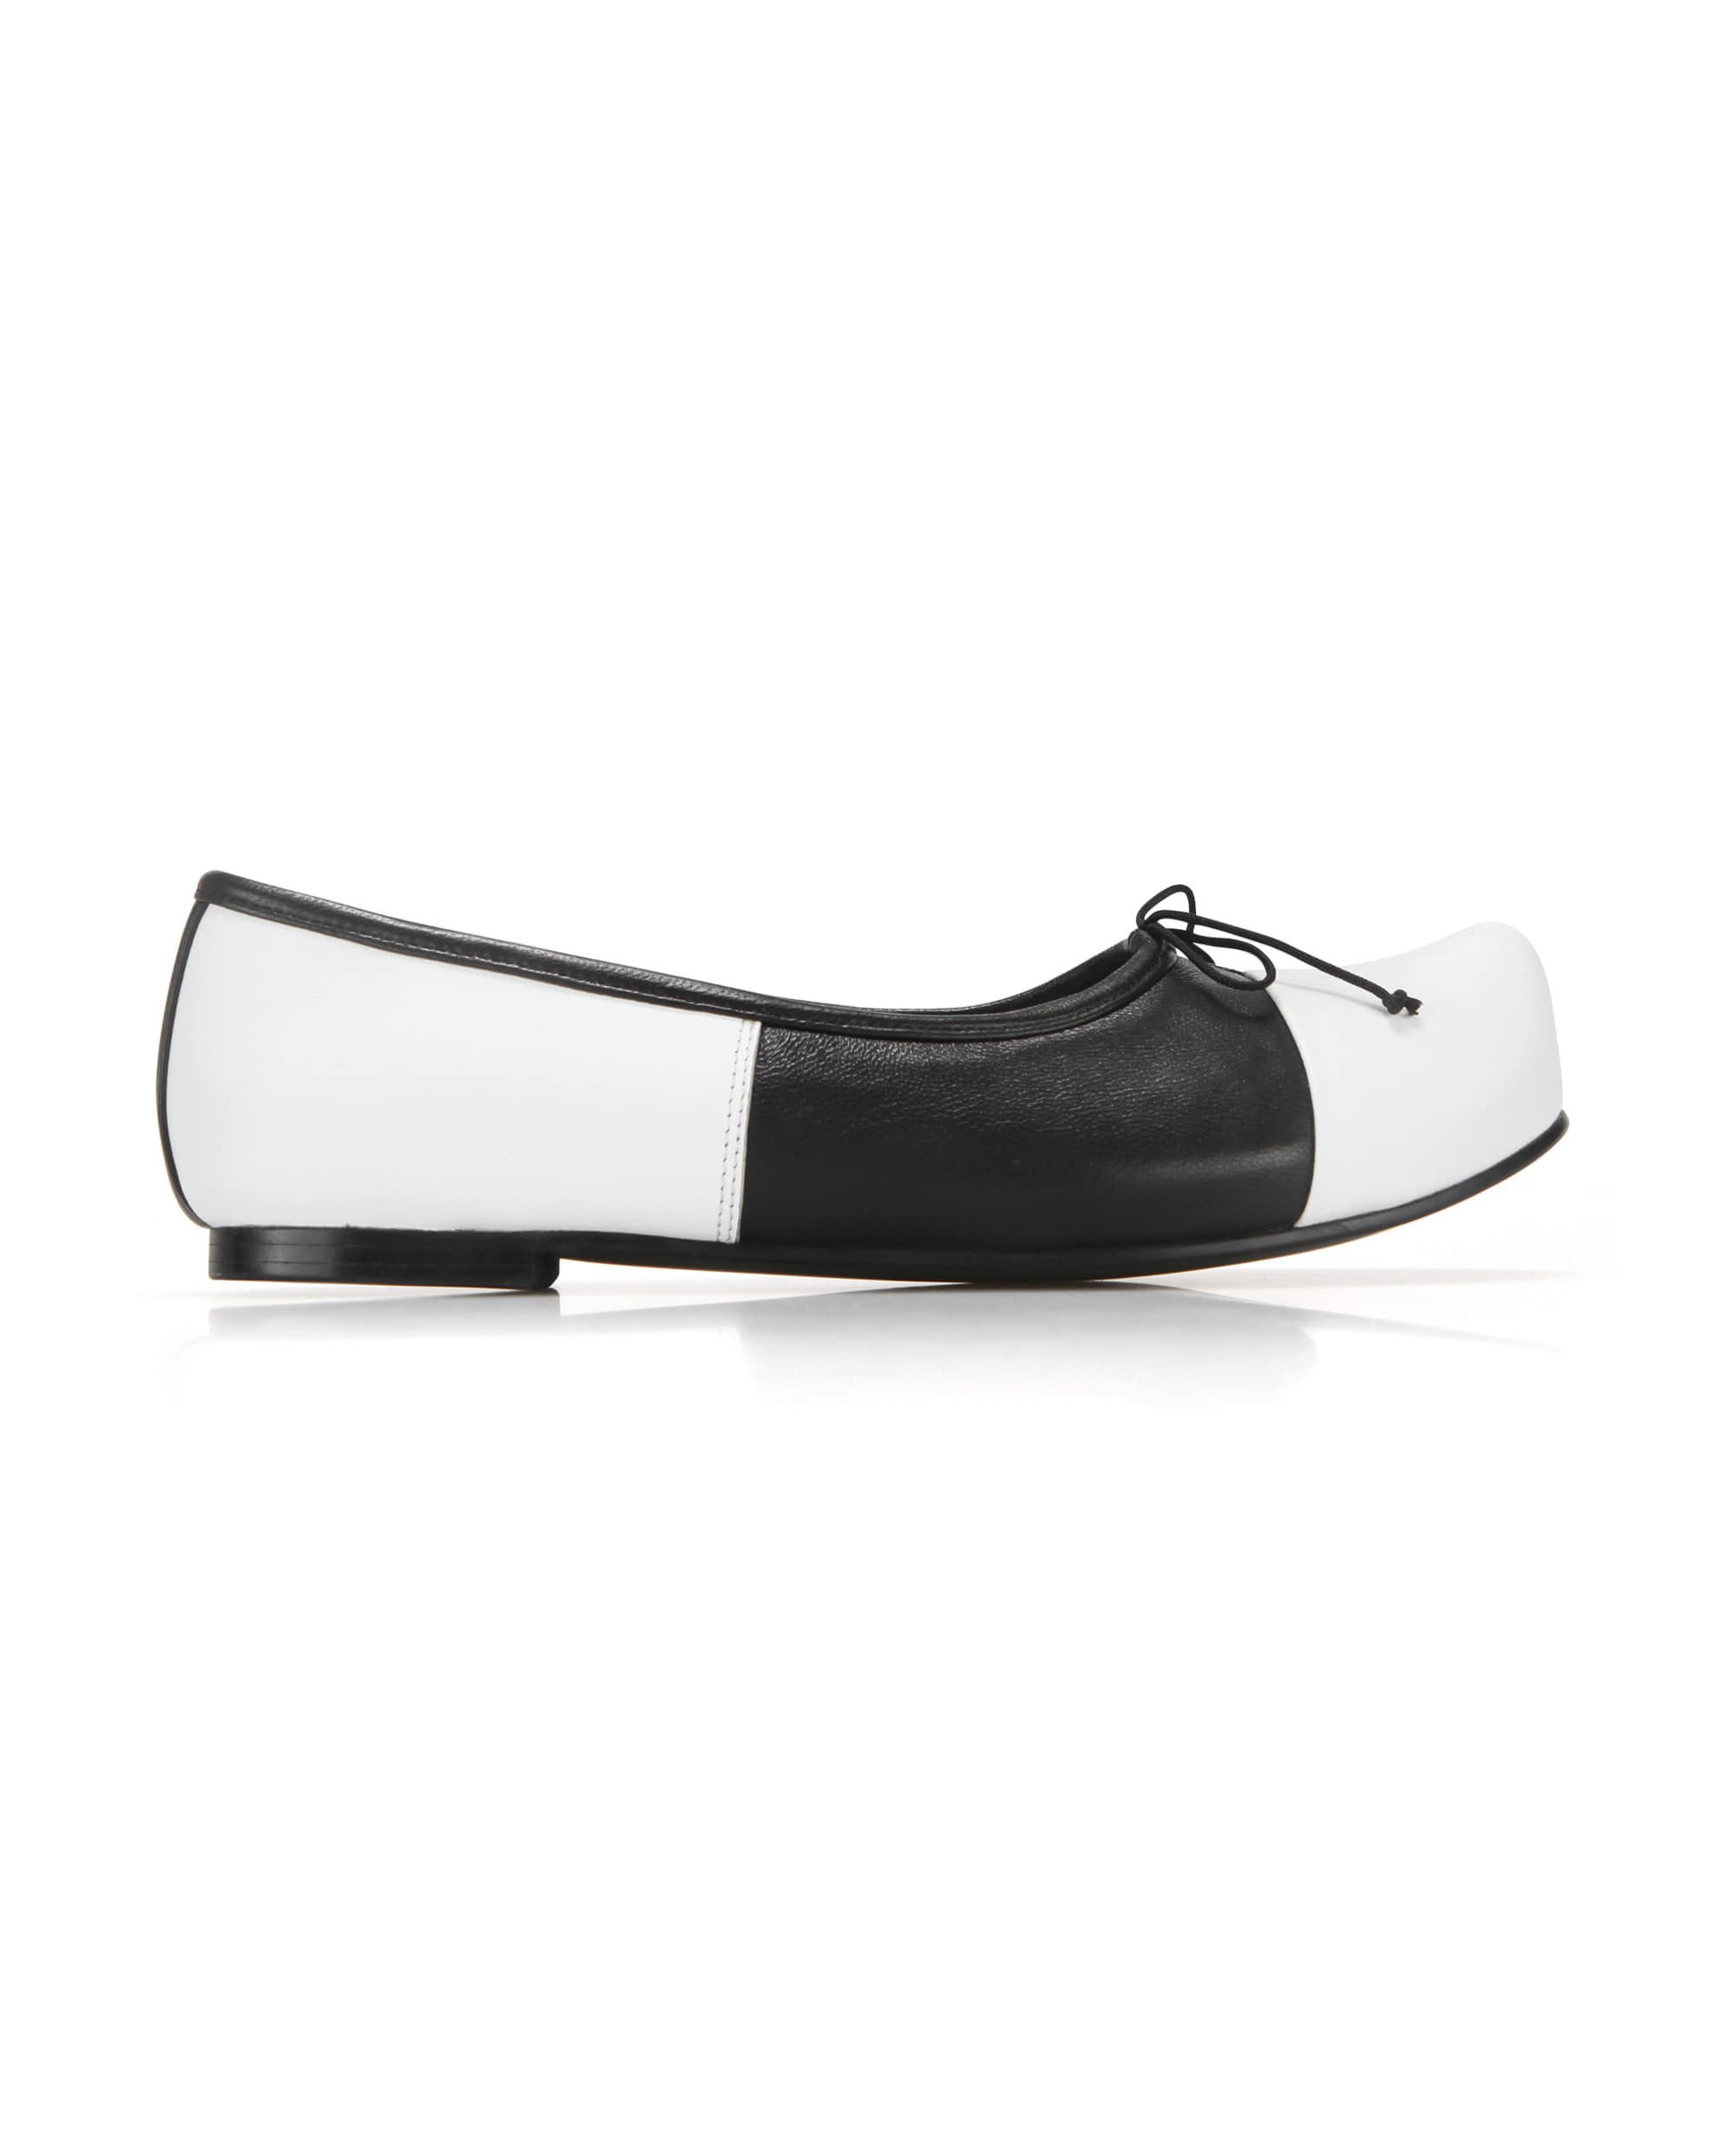 Pointed Toe Ballerina Flats | White/Black